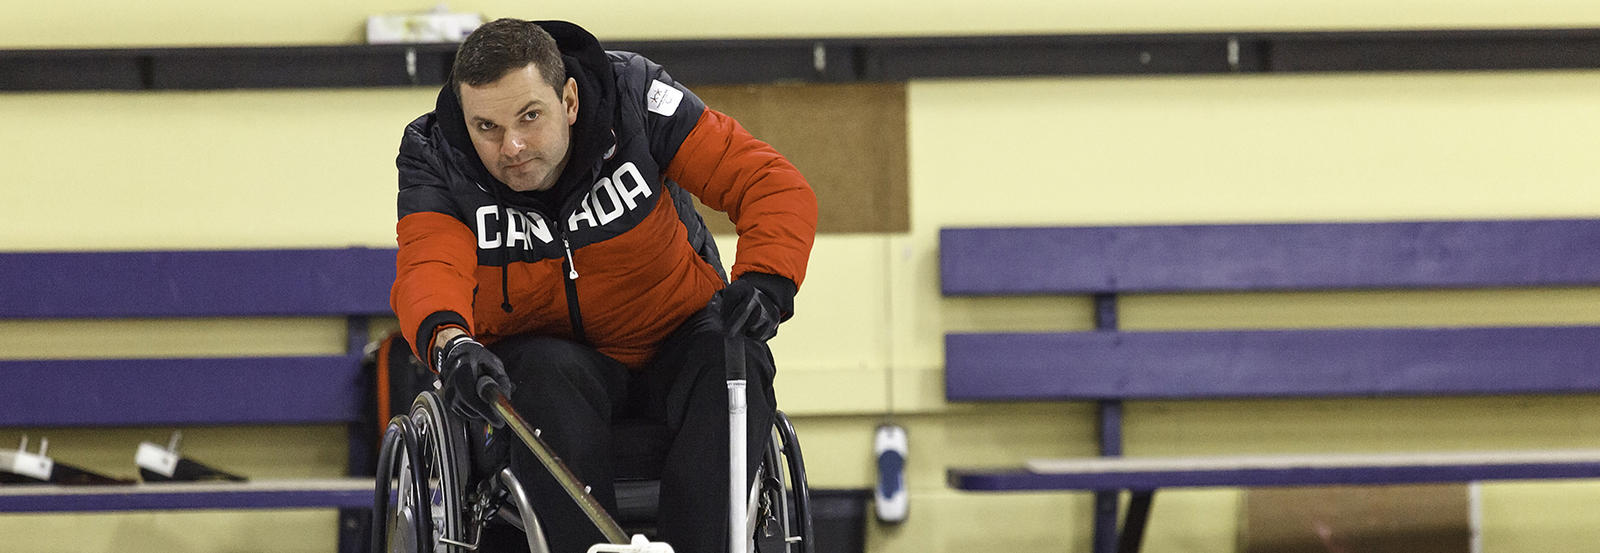 Mark Ideson, skip of the Team Canada wheelchair curling team, takes a shot using the Mark 7 device named in his honour.